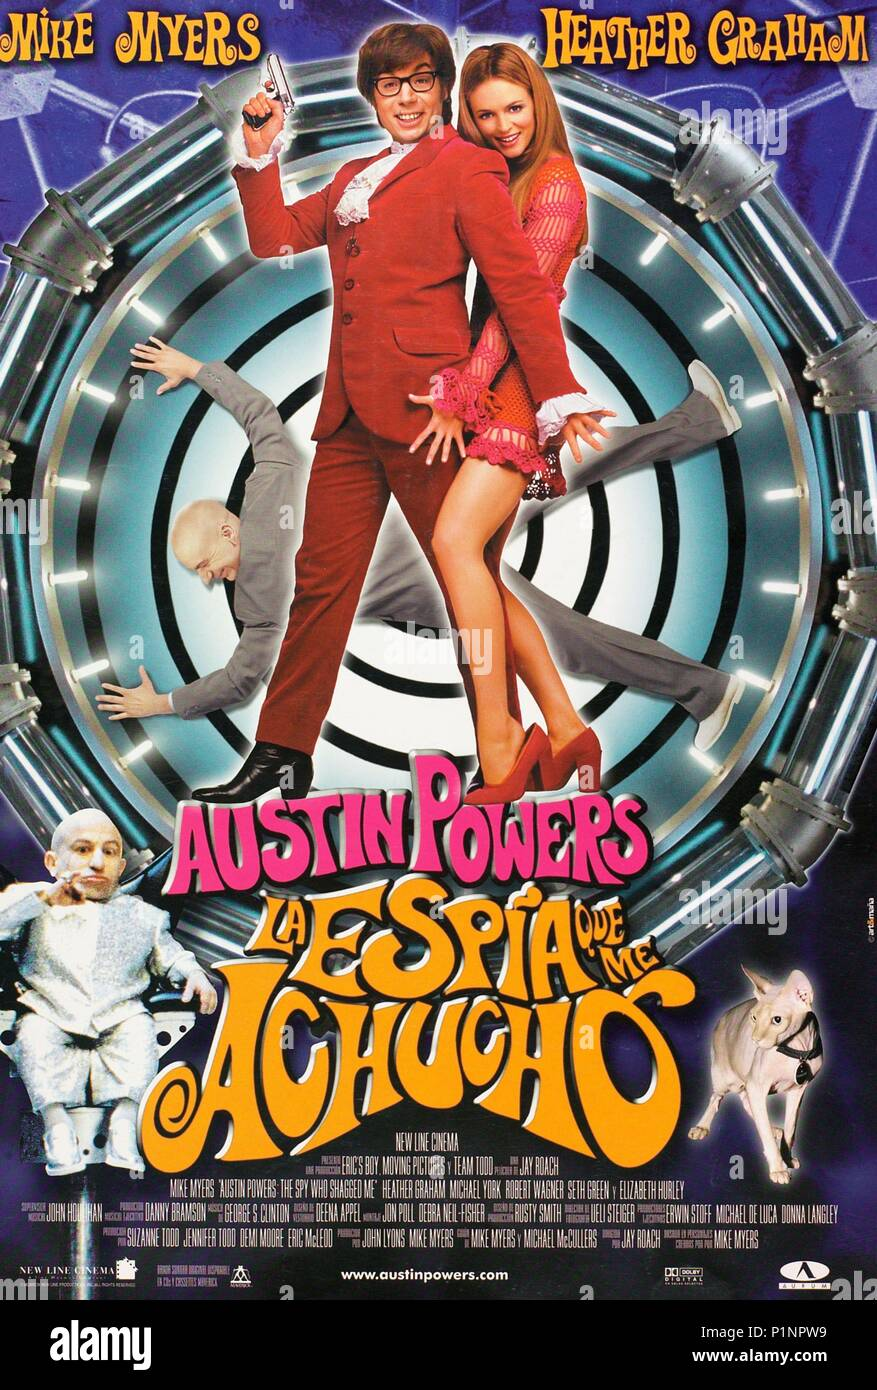 Austin Powers The Spy Who Shagged Me High Resolution Stock Photography And Images Alamy